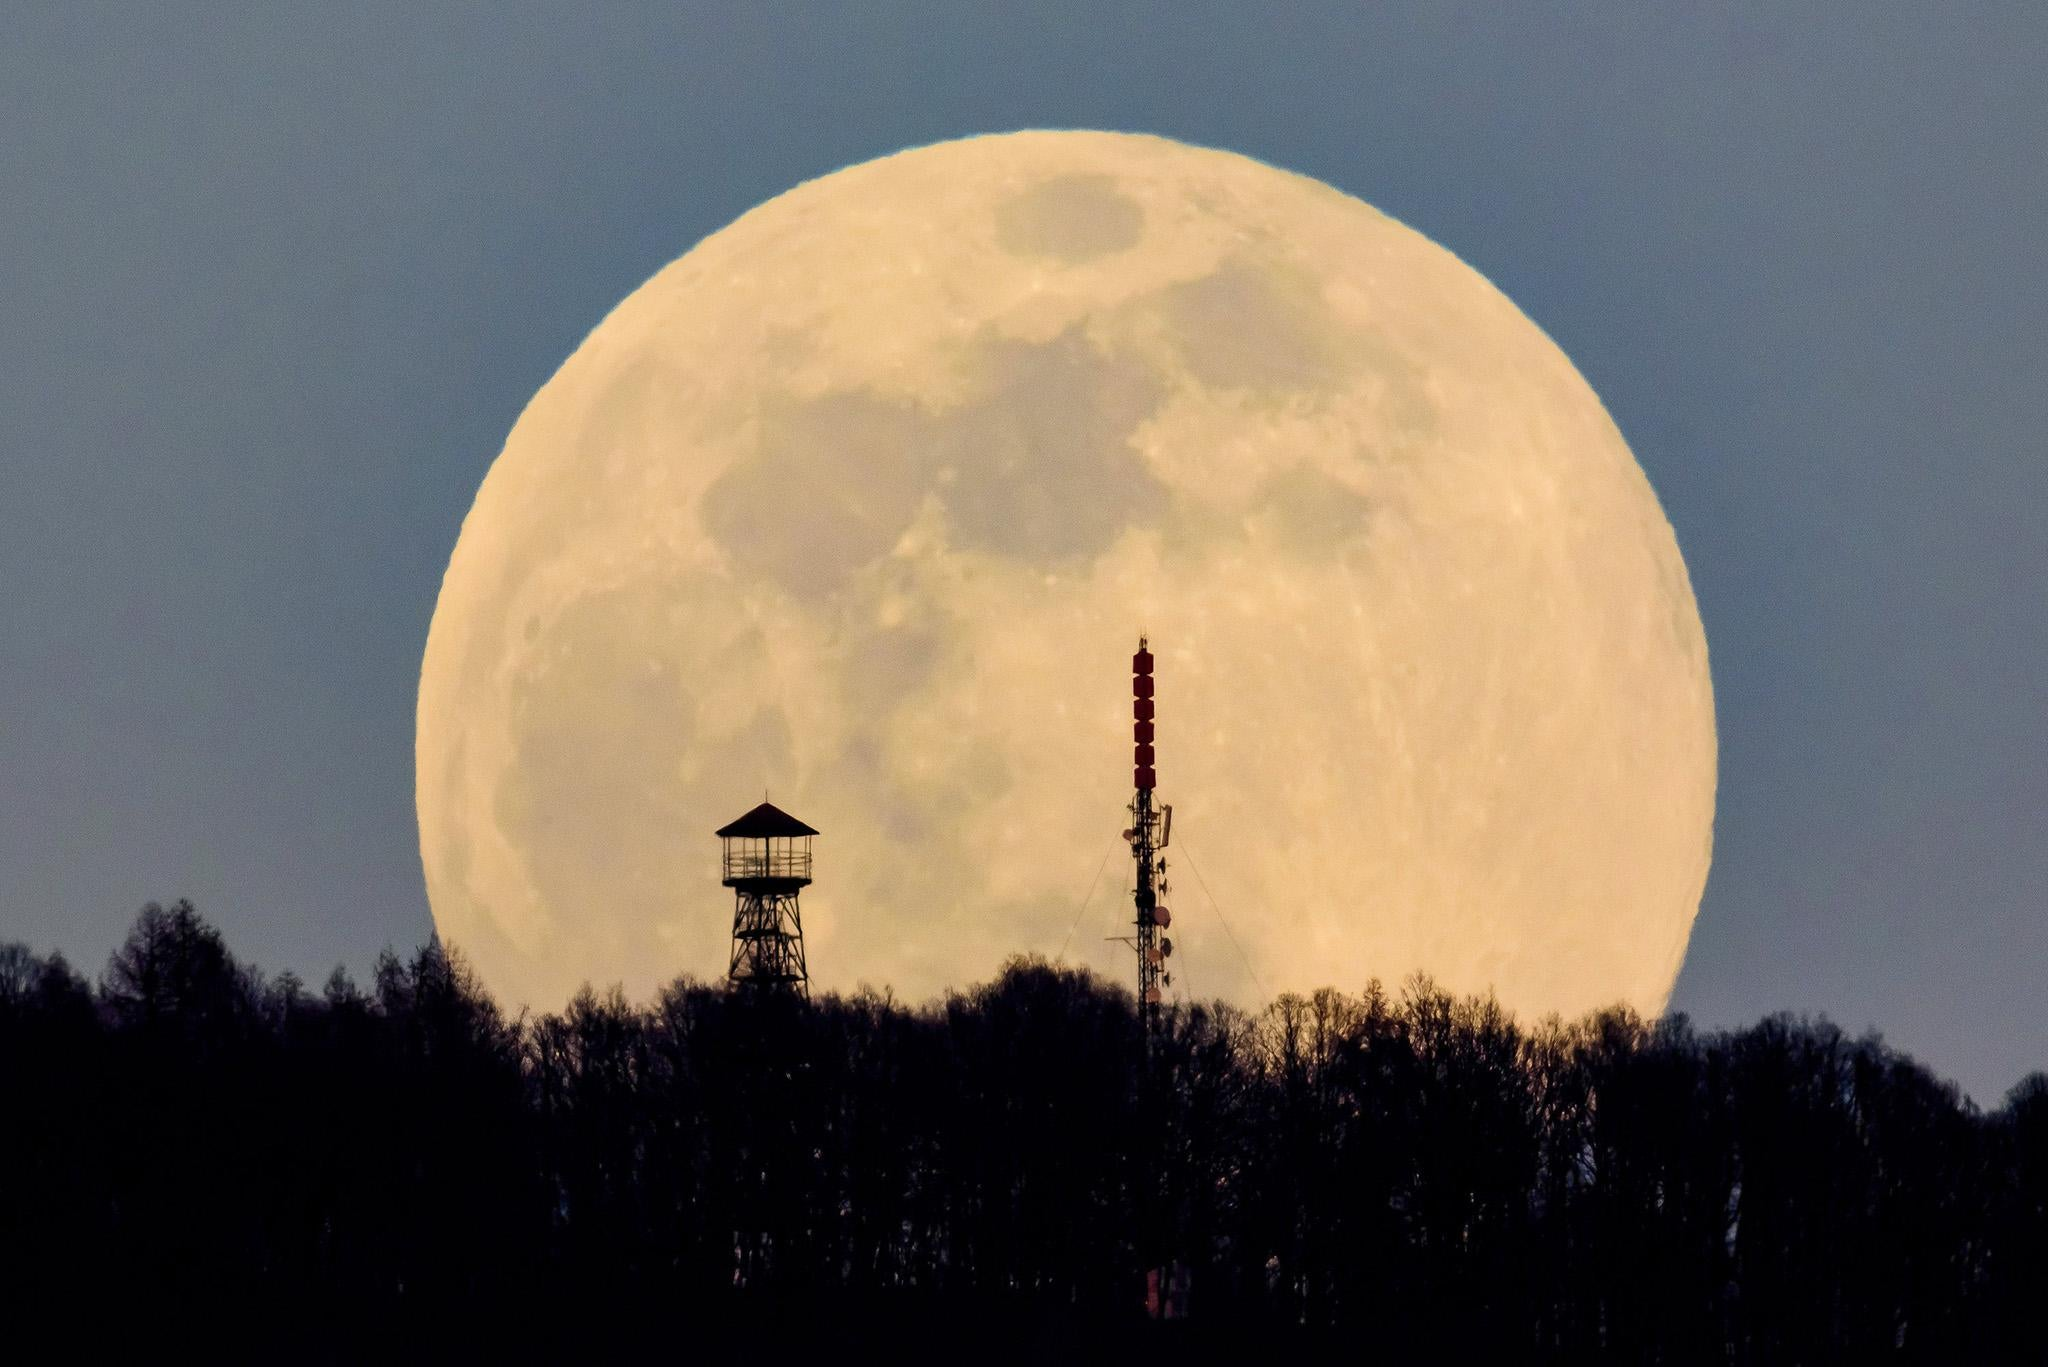 Super moon tonight: How to see the spring equinox Worm Moon in the